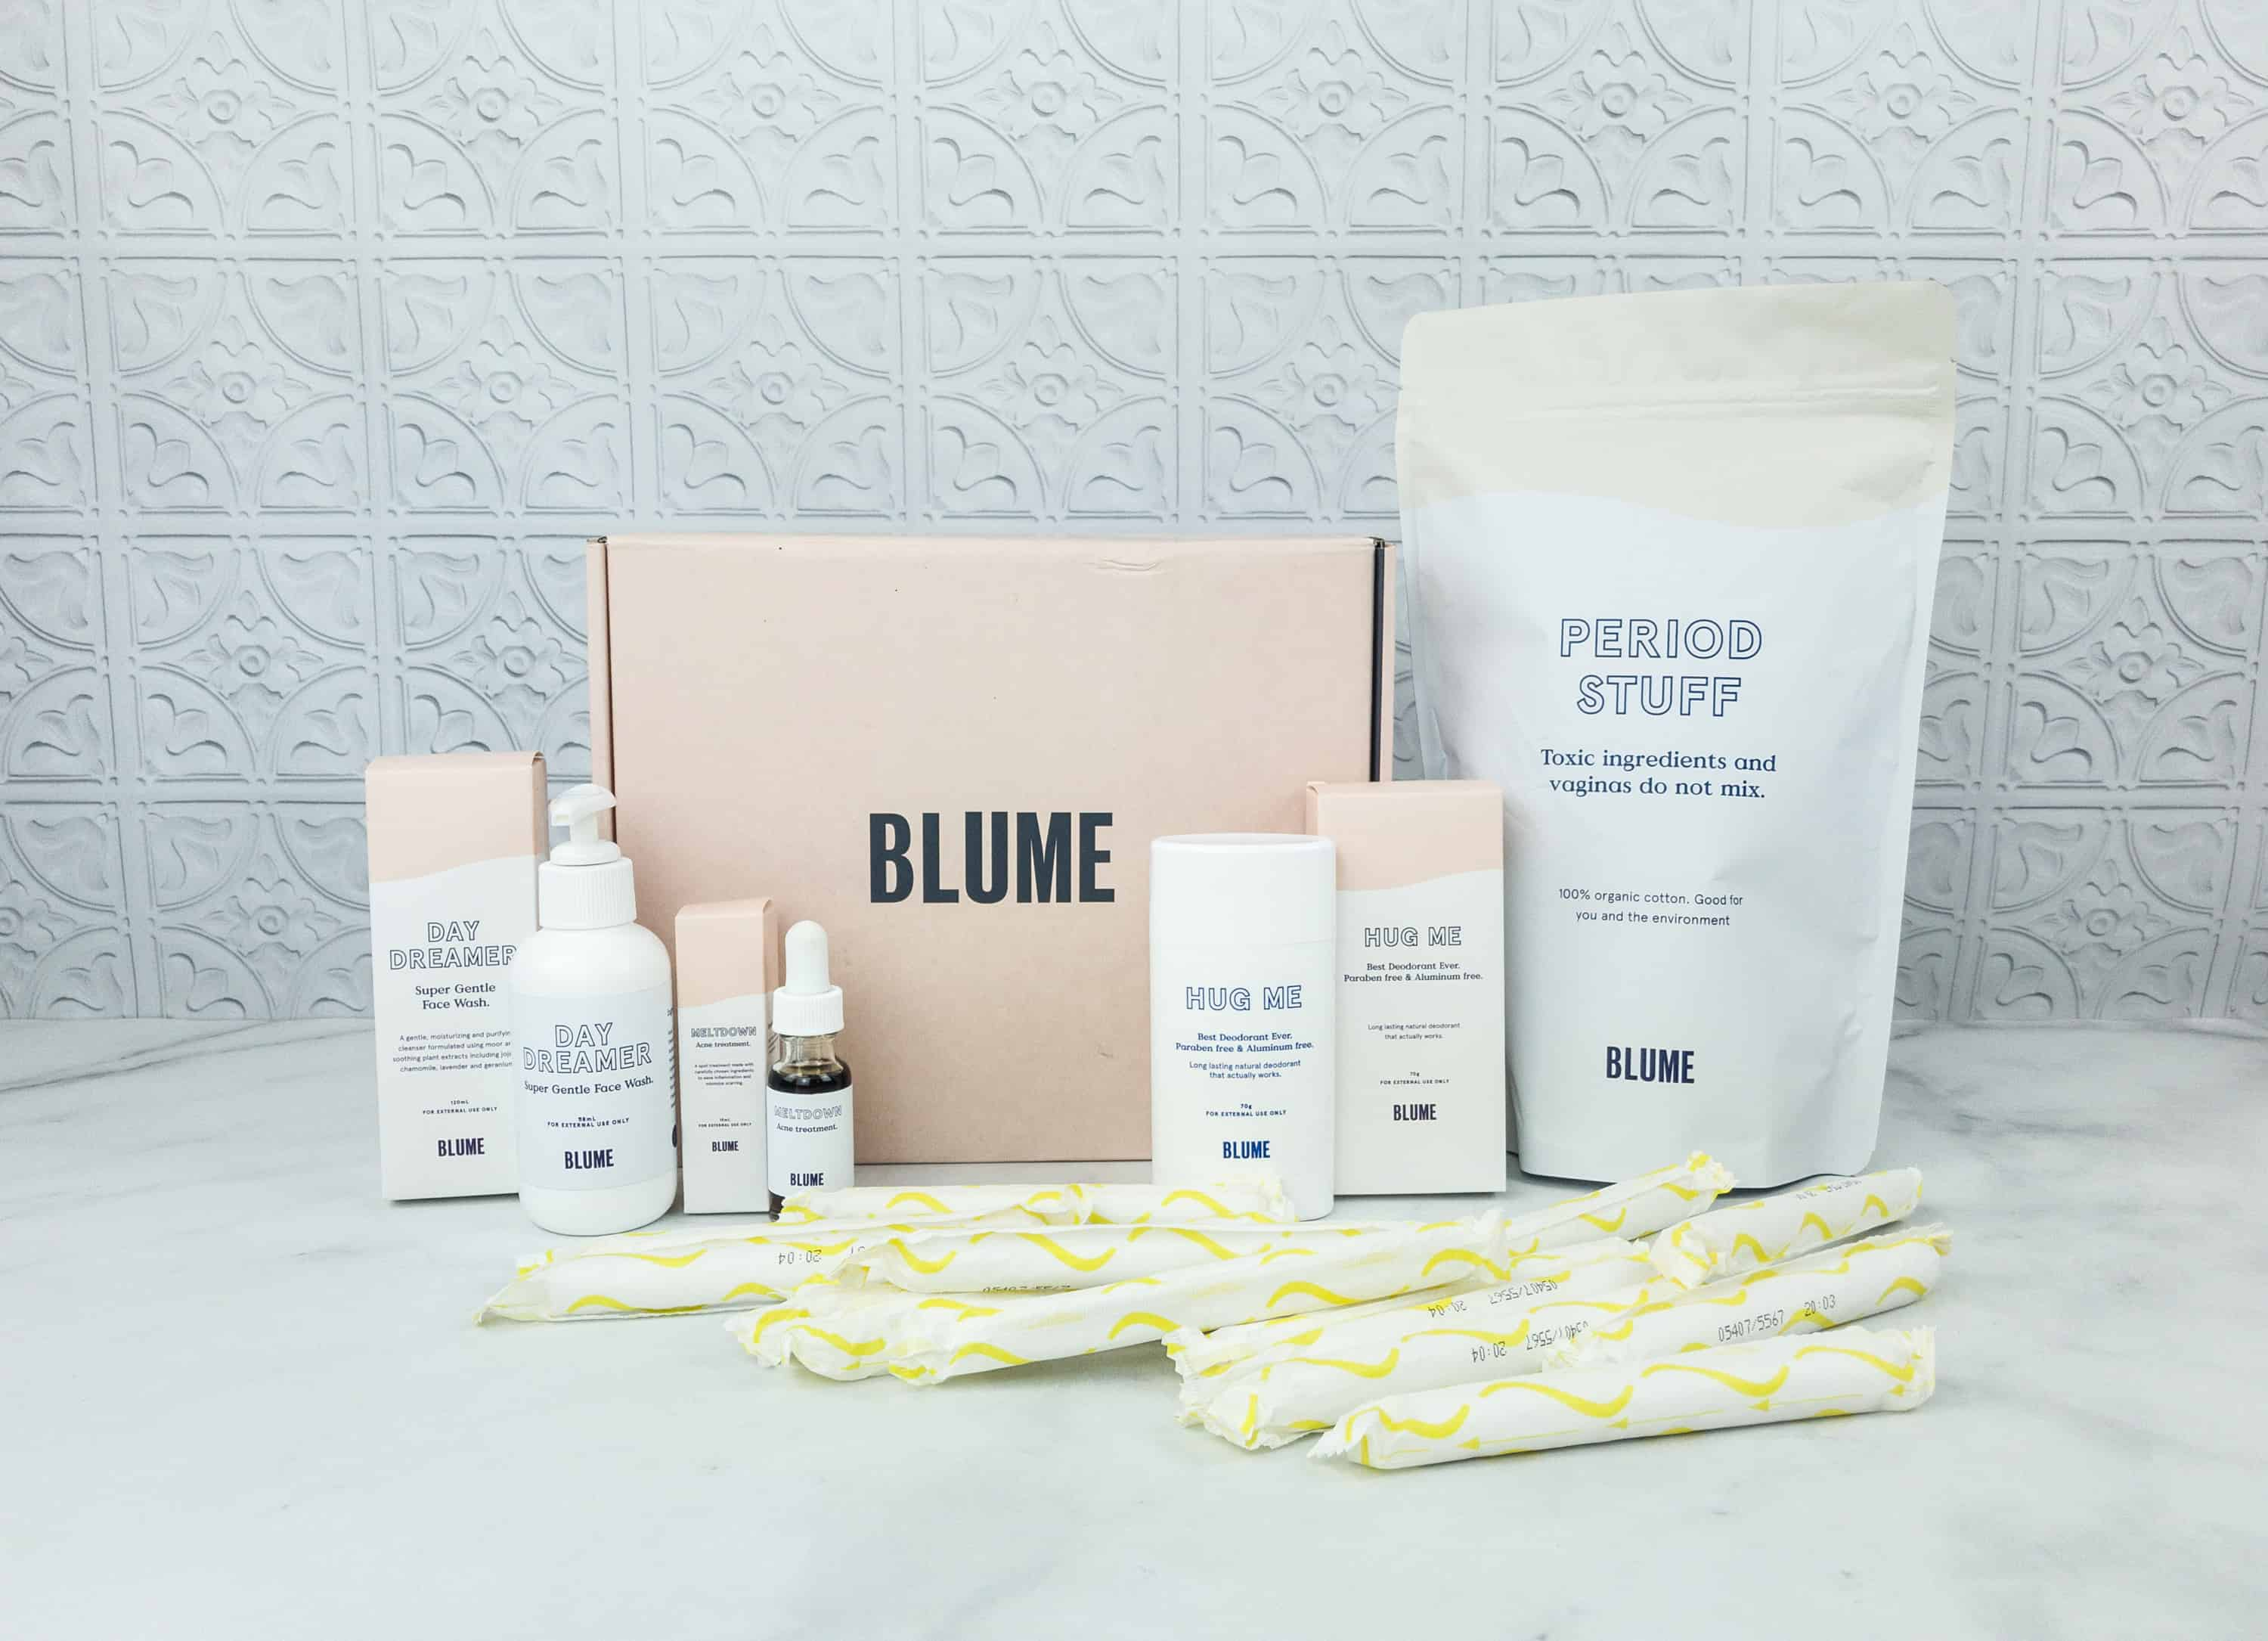 Blume Period Care Subscription Box + Self-Care Bundle Review